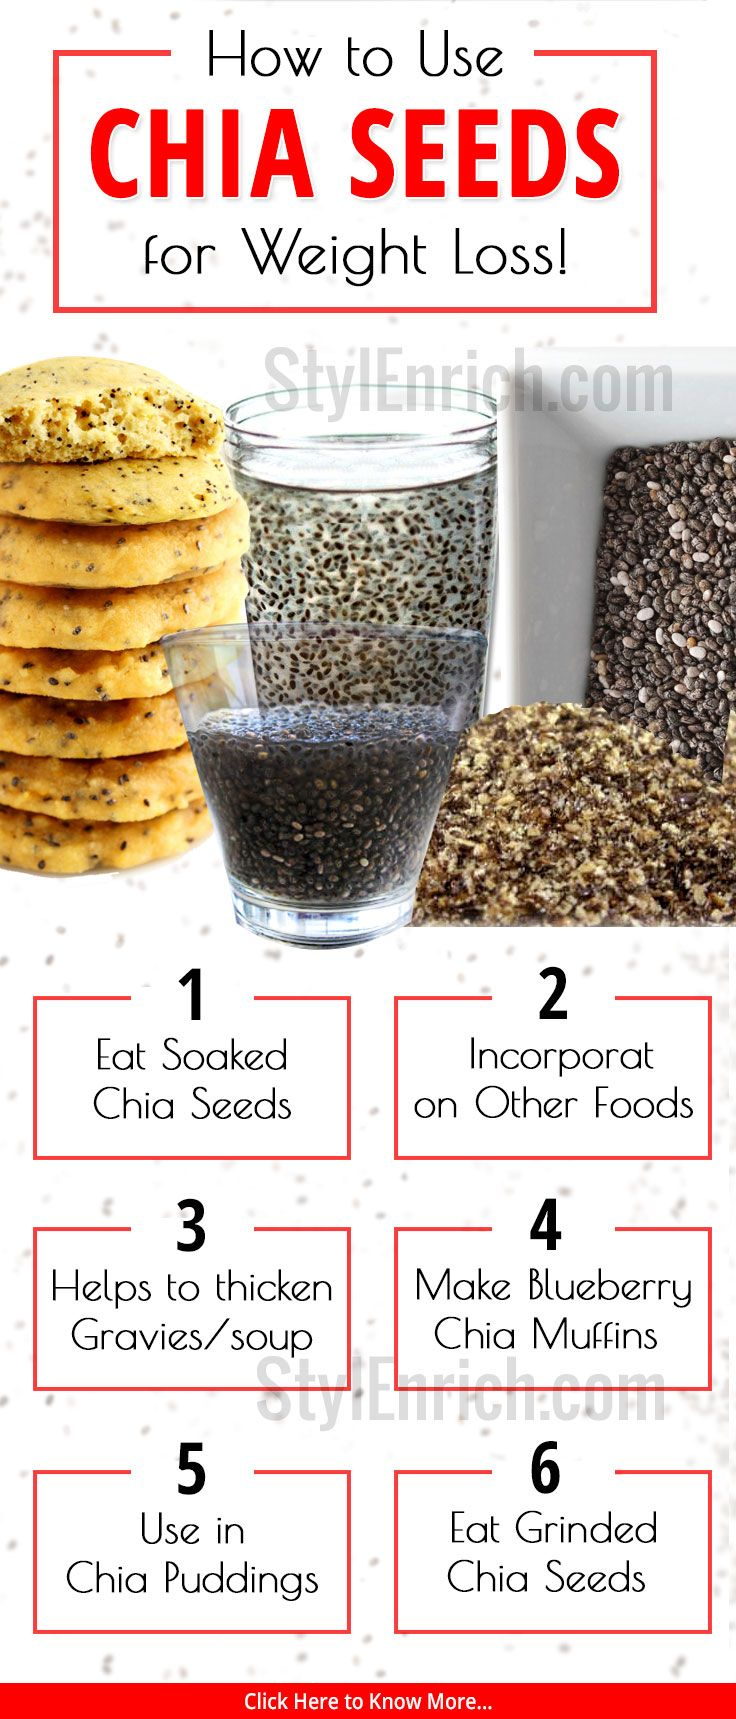 #ChiaSeeds are miraculous #WeightLoss hypes and it is important that you include...